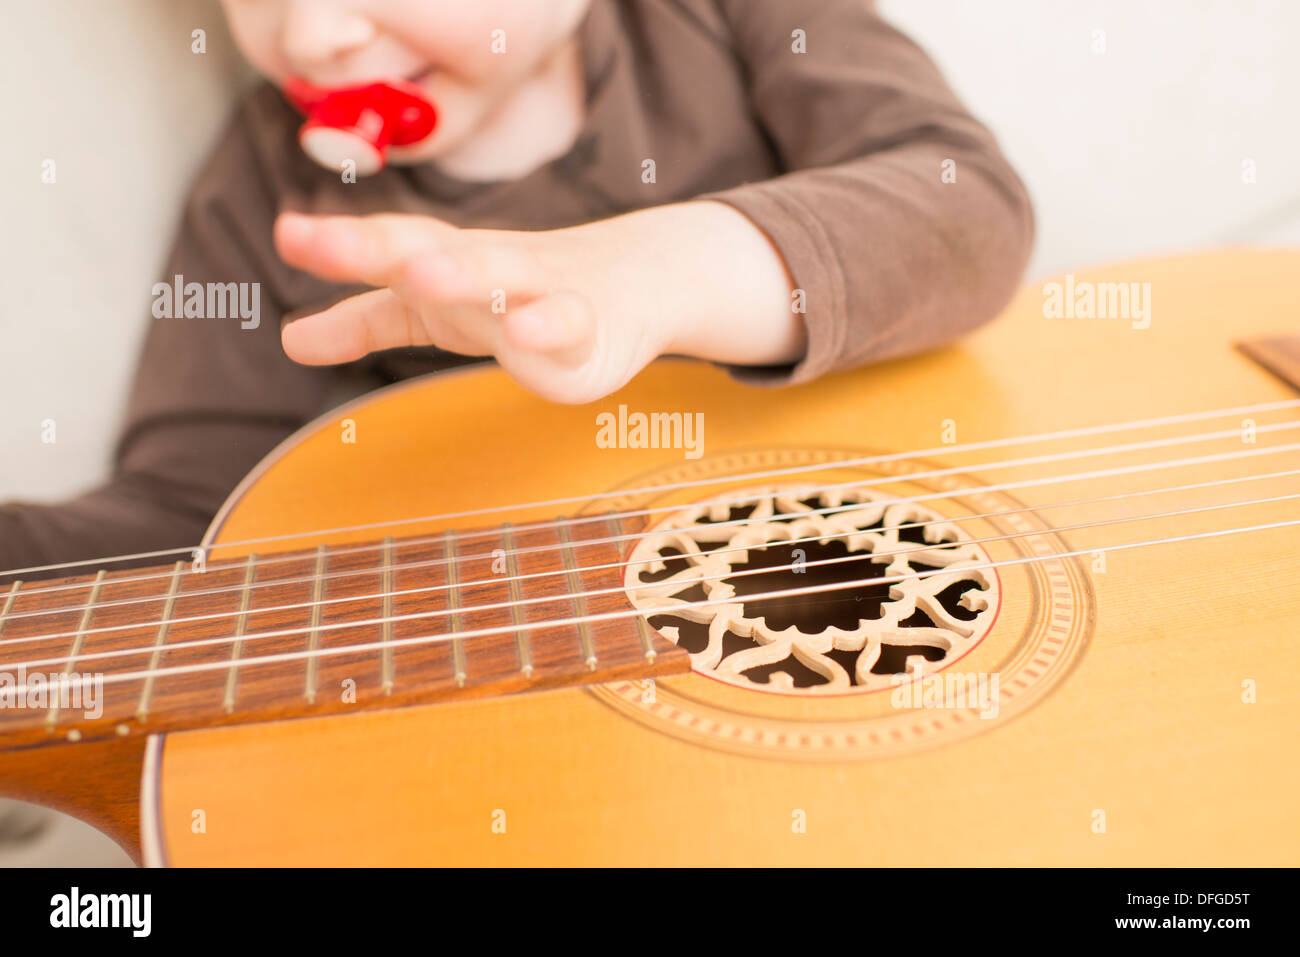 Young girl, 4 years old, playing with an acoustic guitar. - Stock Image